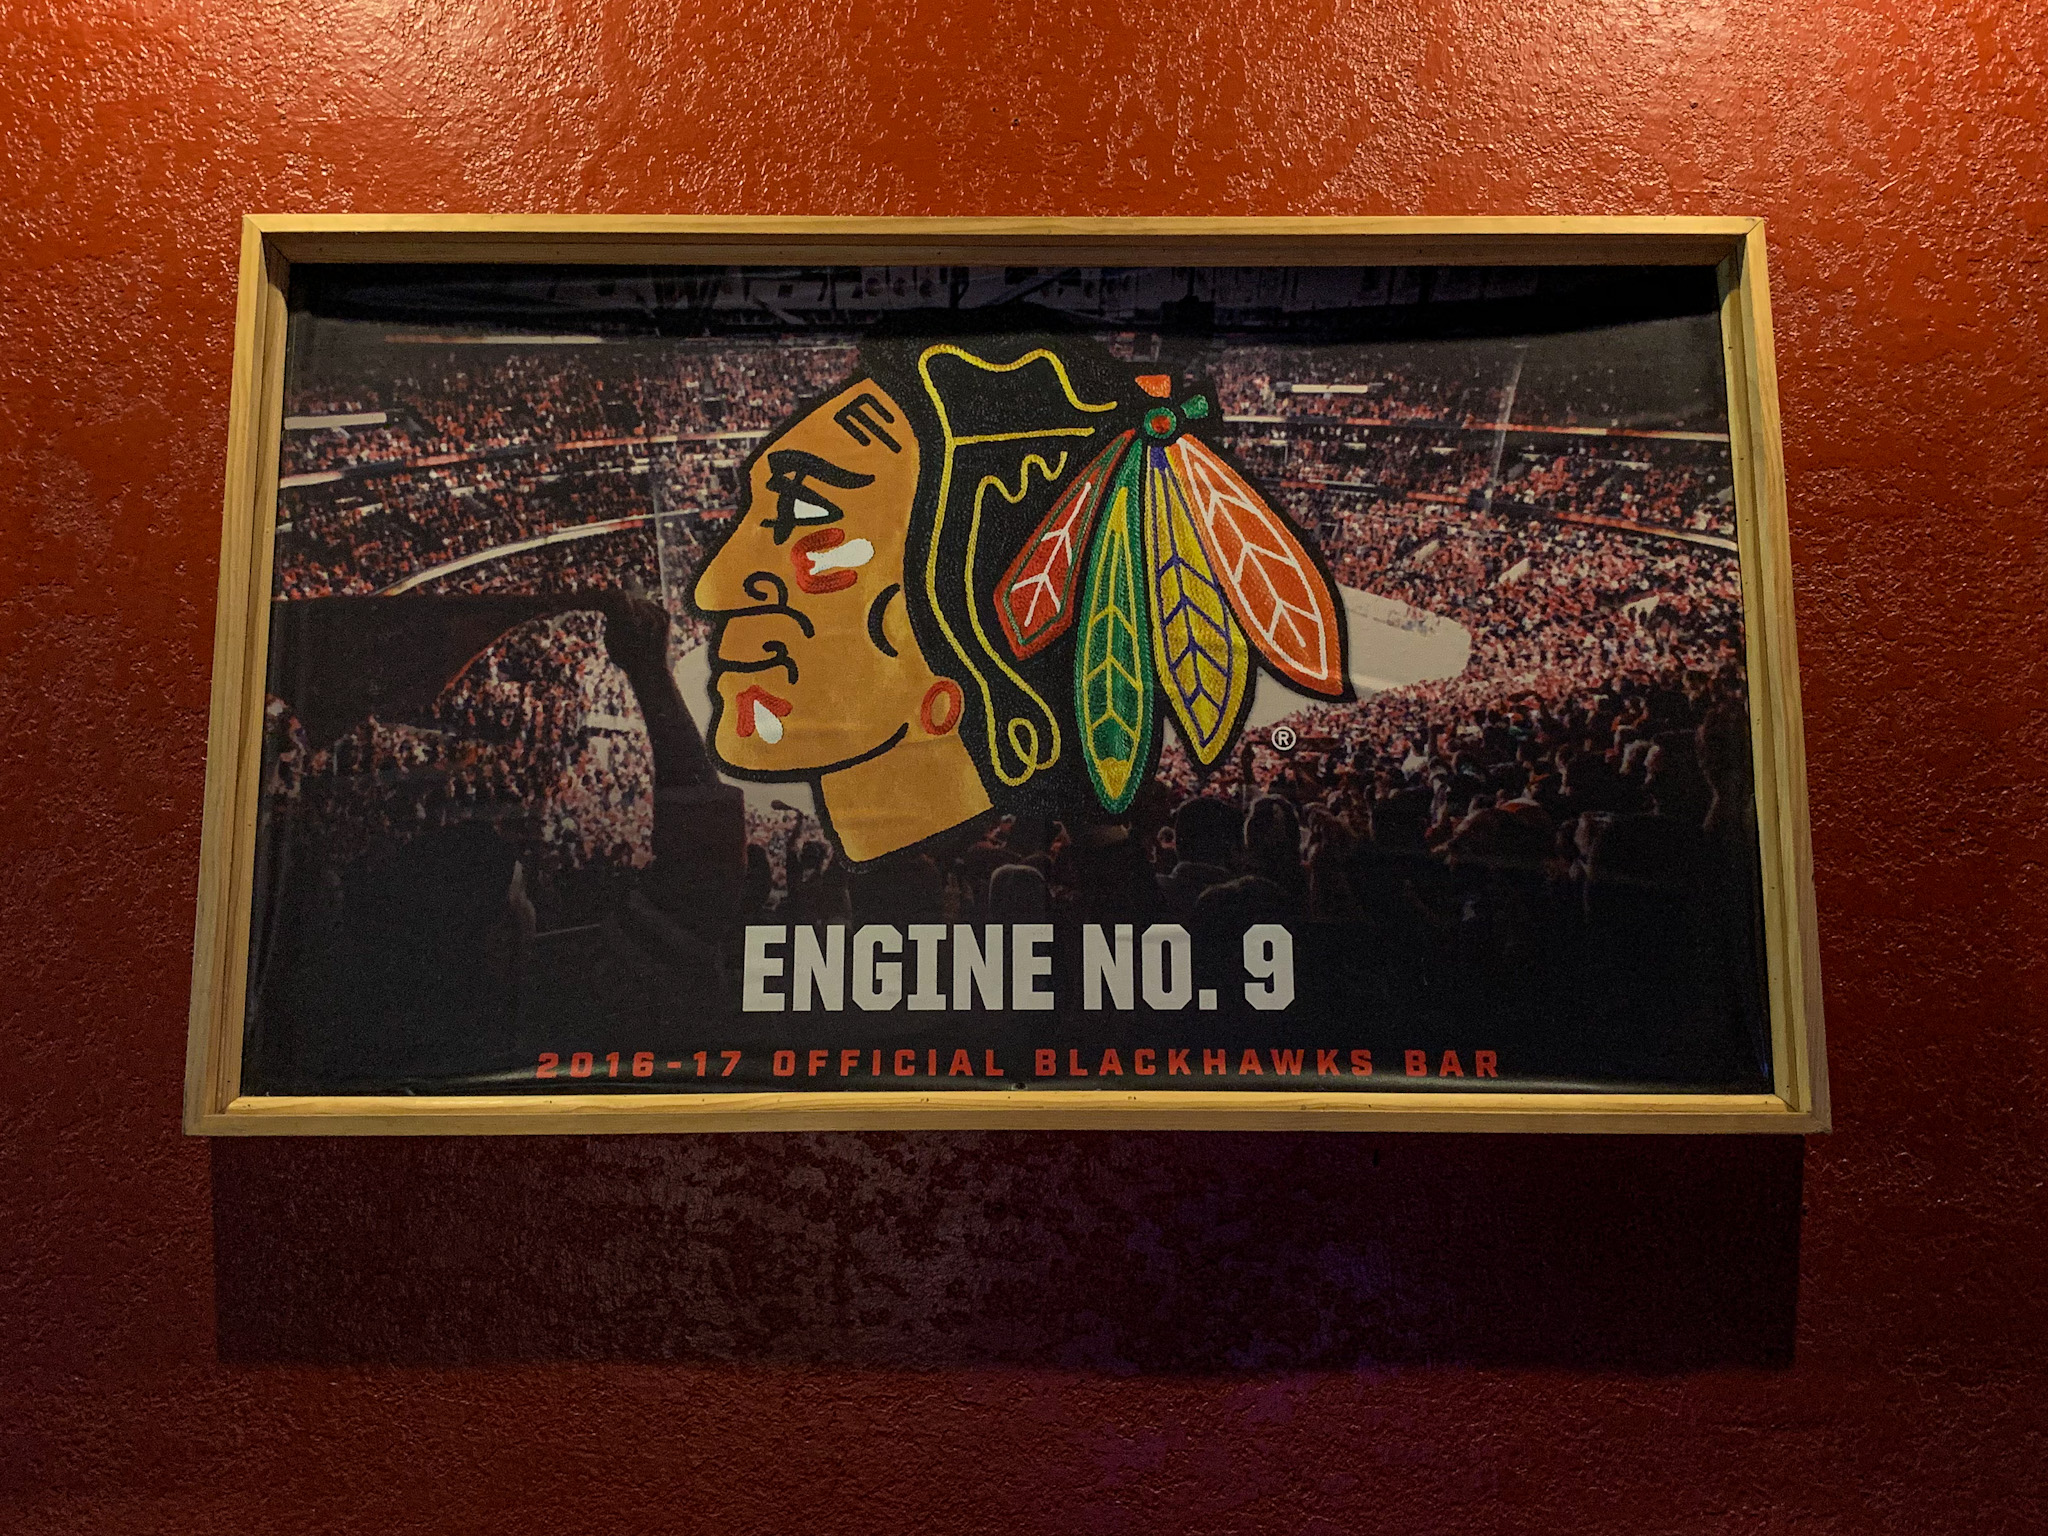 Blackhawks bar signage